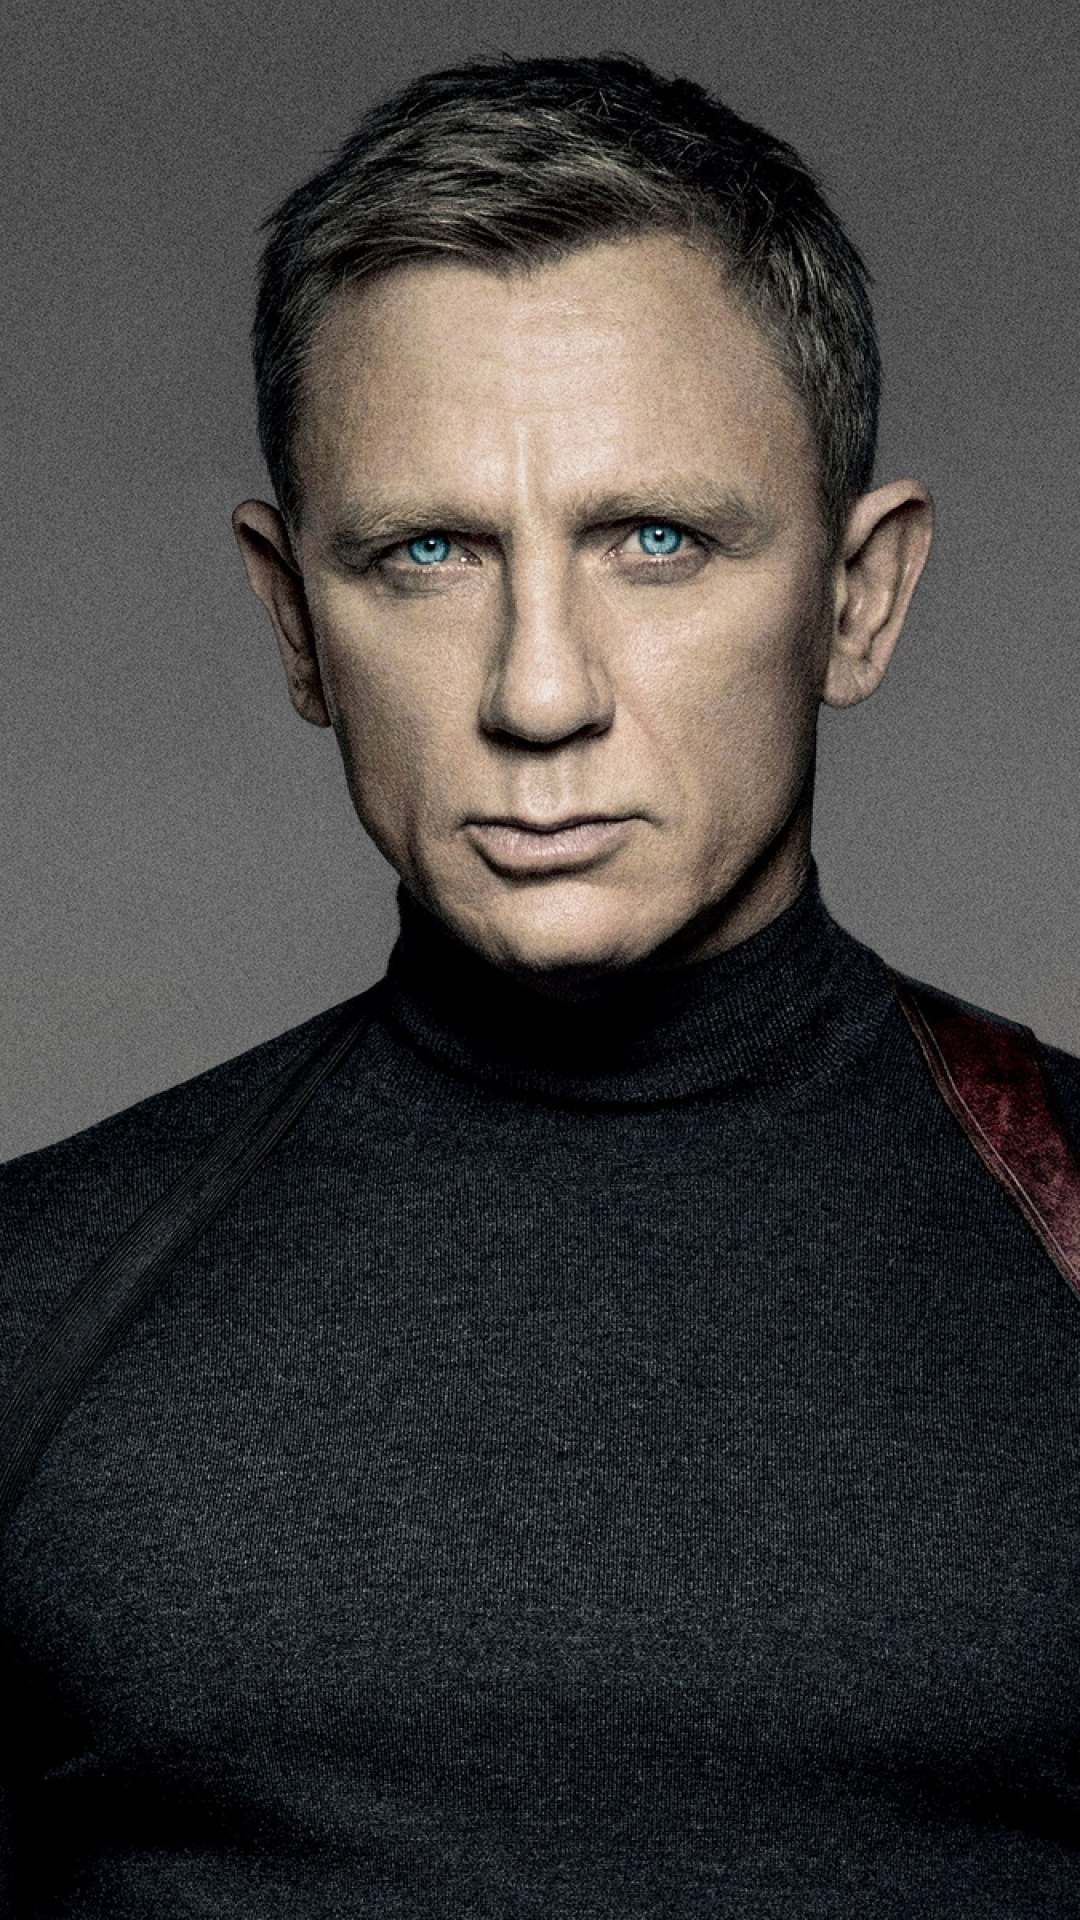 spectre_daniel_craig_james_bond_2015_101313_1080x1920